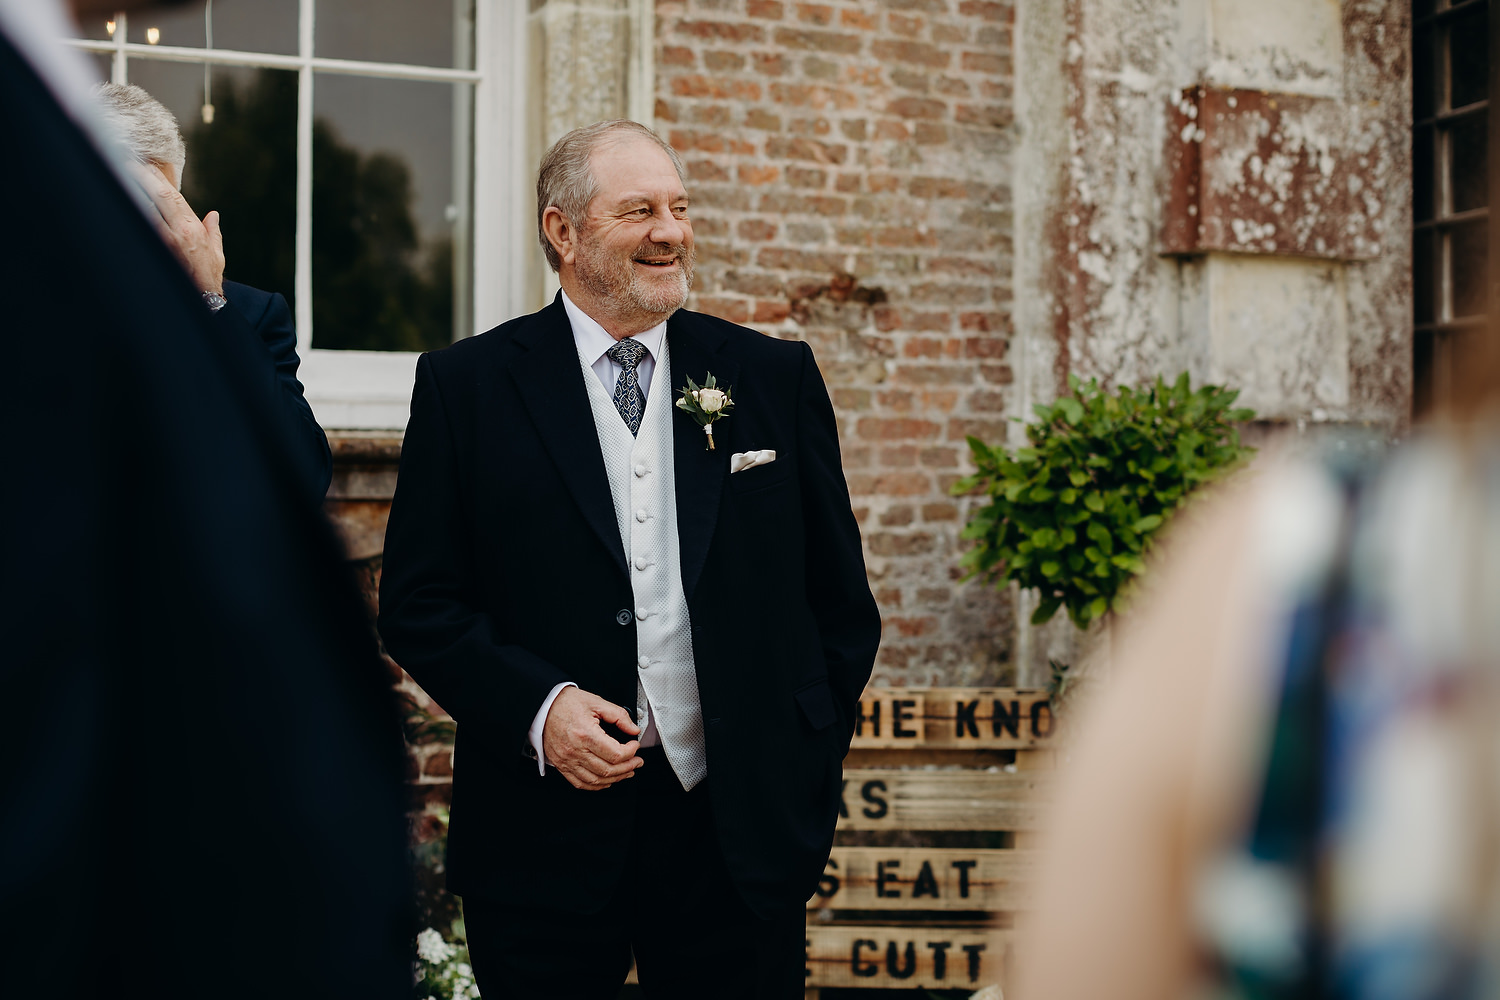 father of bride before ceremony